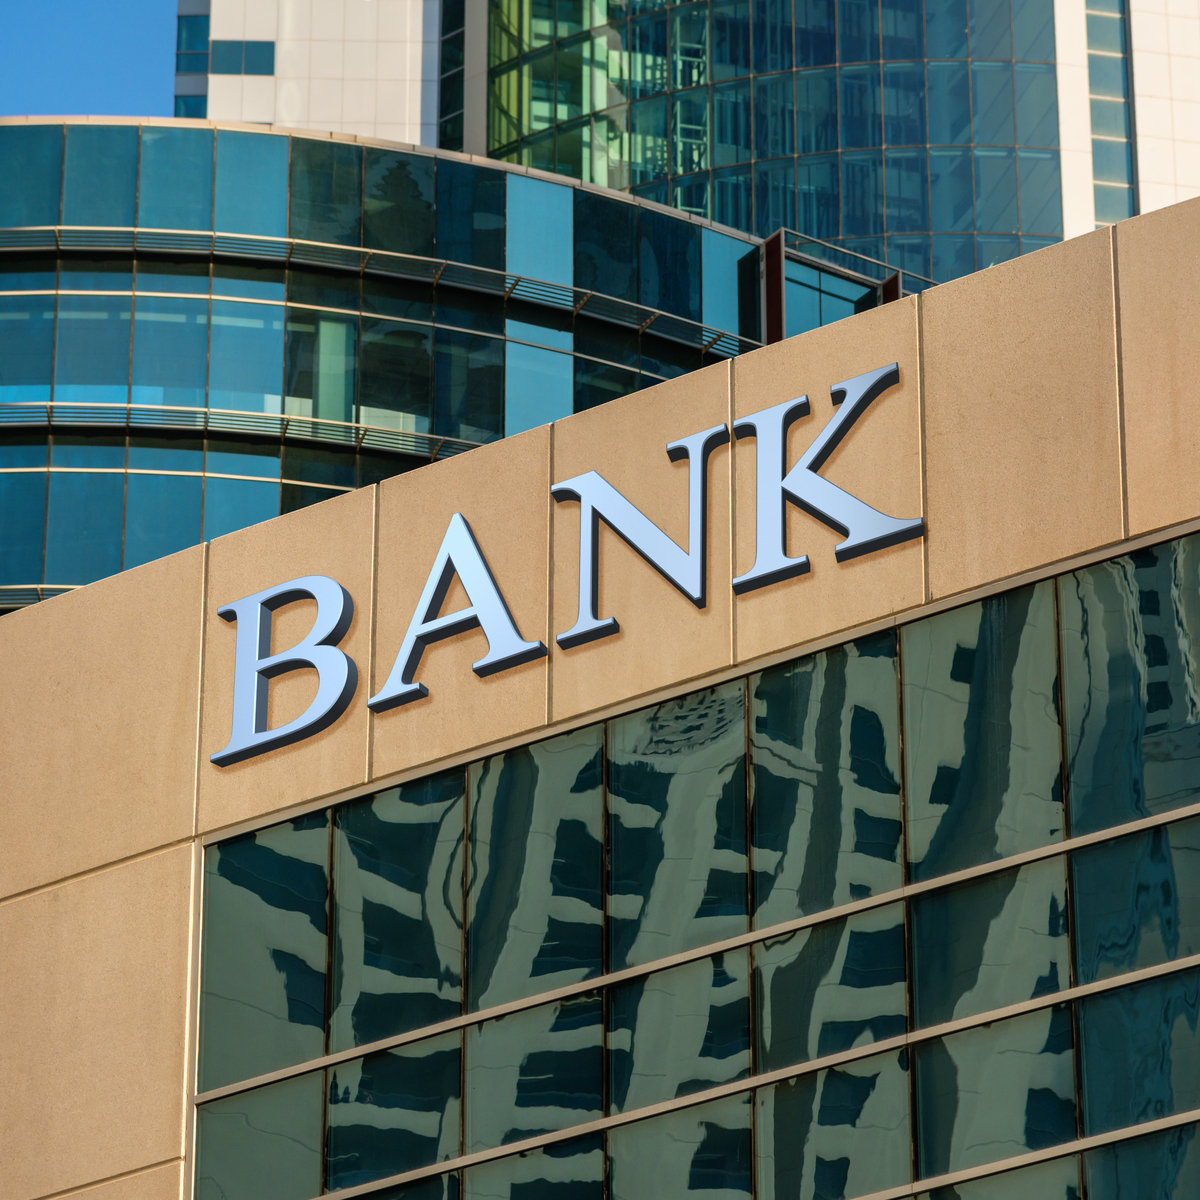 Top 5 critical areas that increases risk exposure to banks during Covid-19